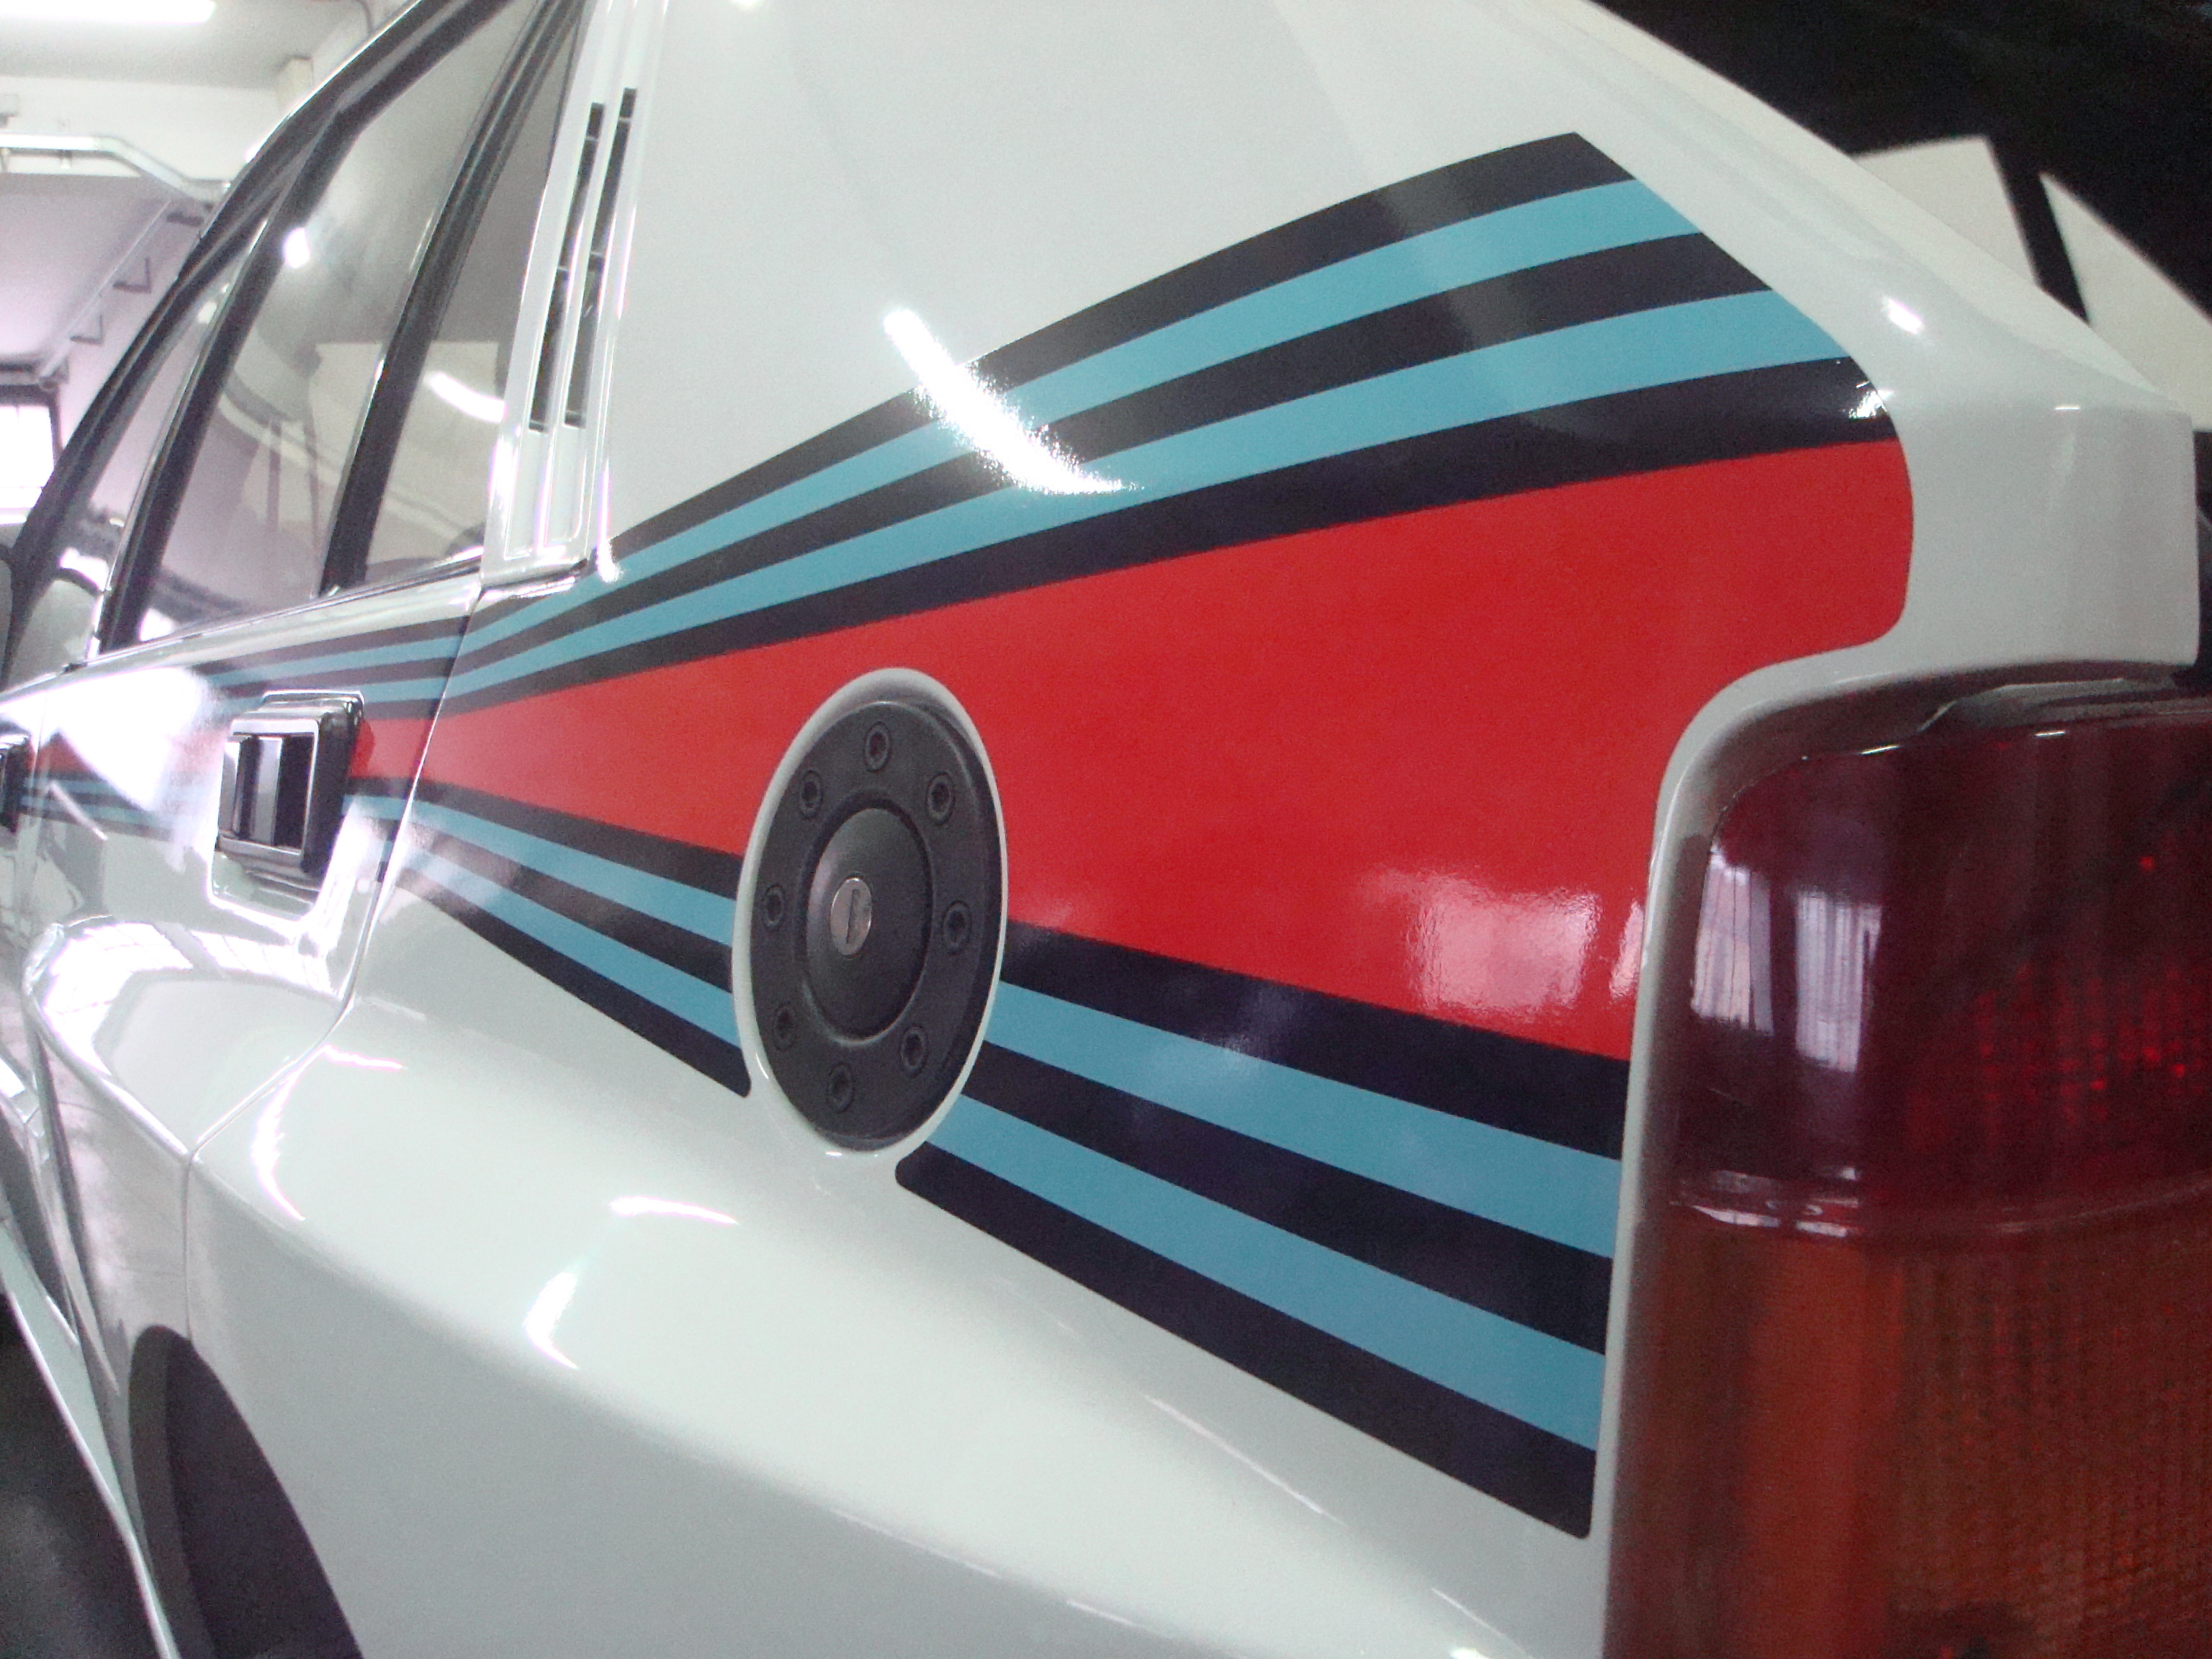 martini 5 decal set on car, showing detailed shaping of the stickers.